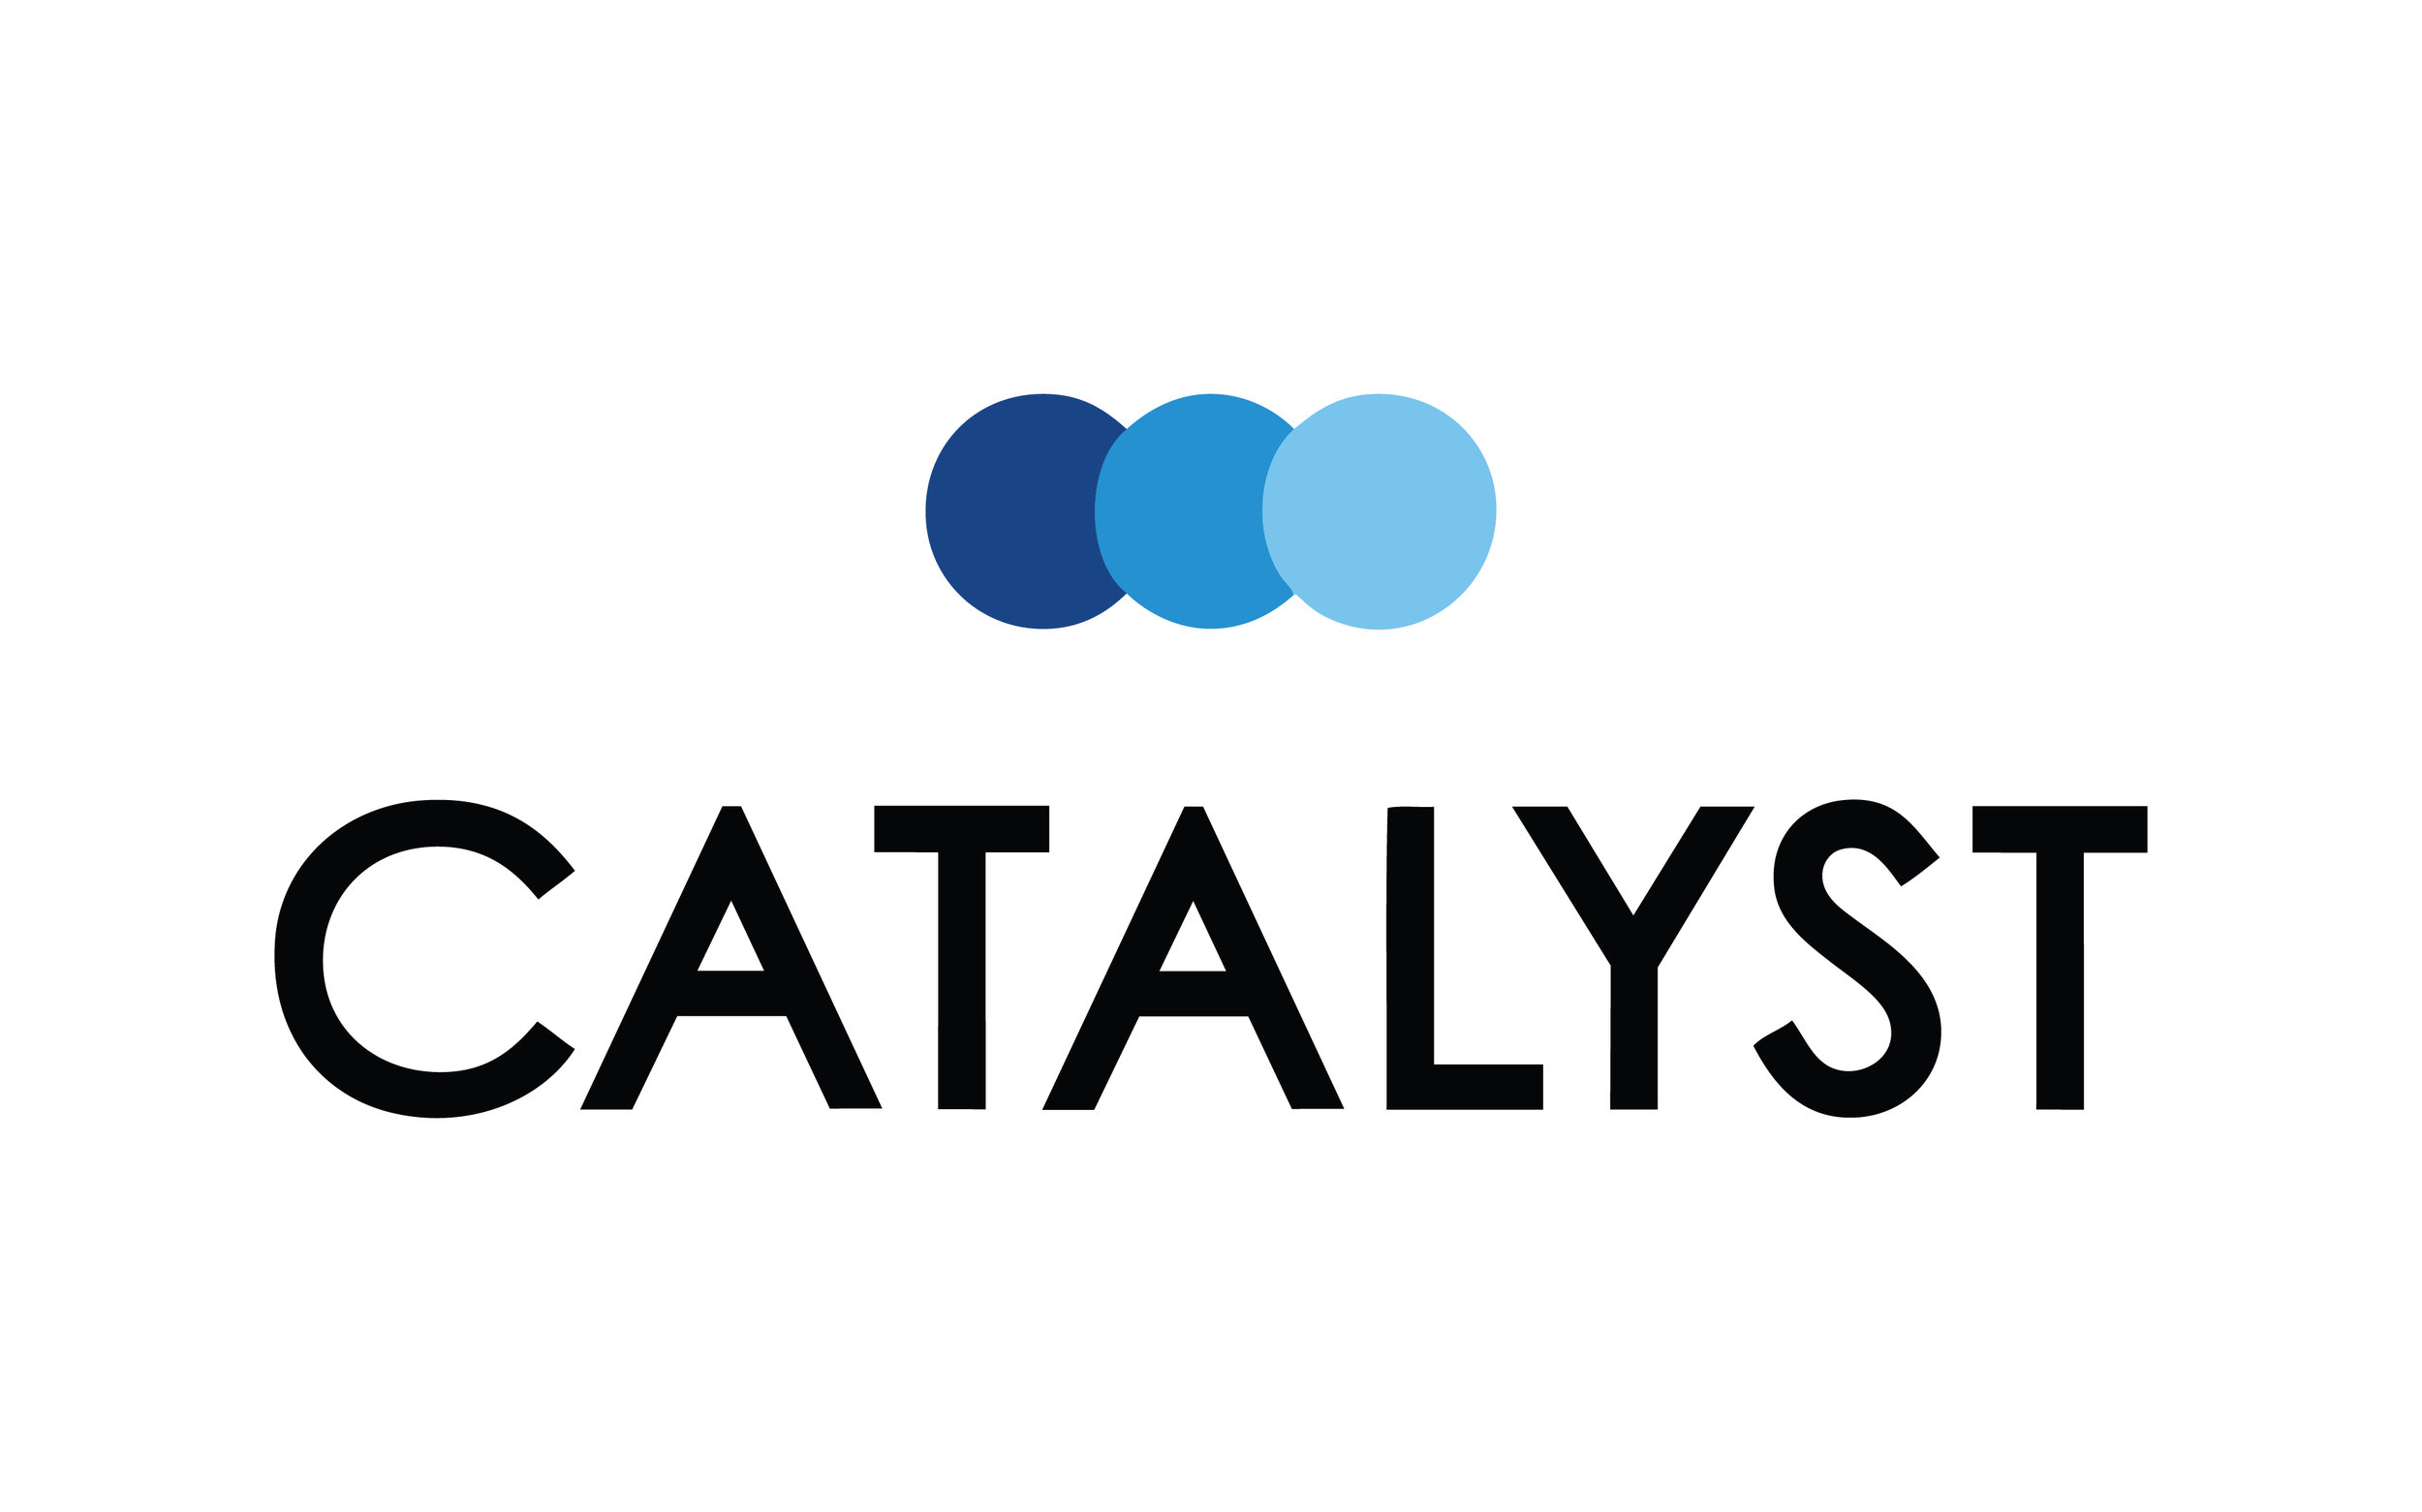 catalyst_logo_4k-01.jpg